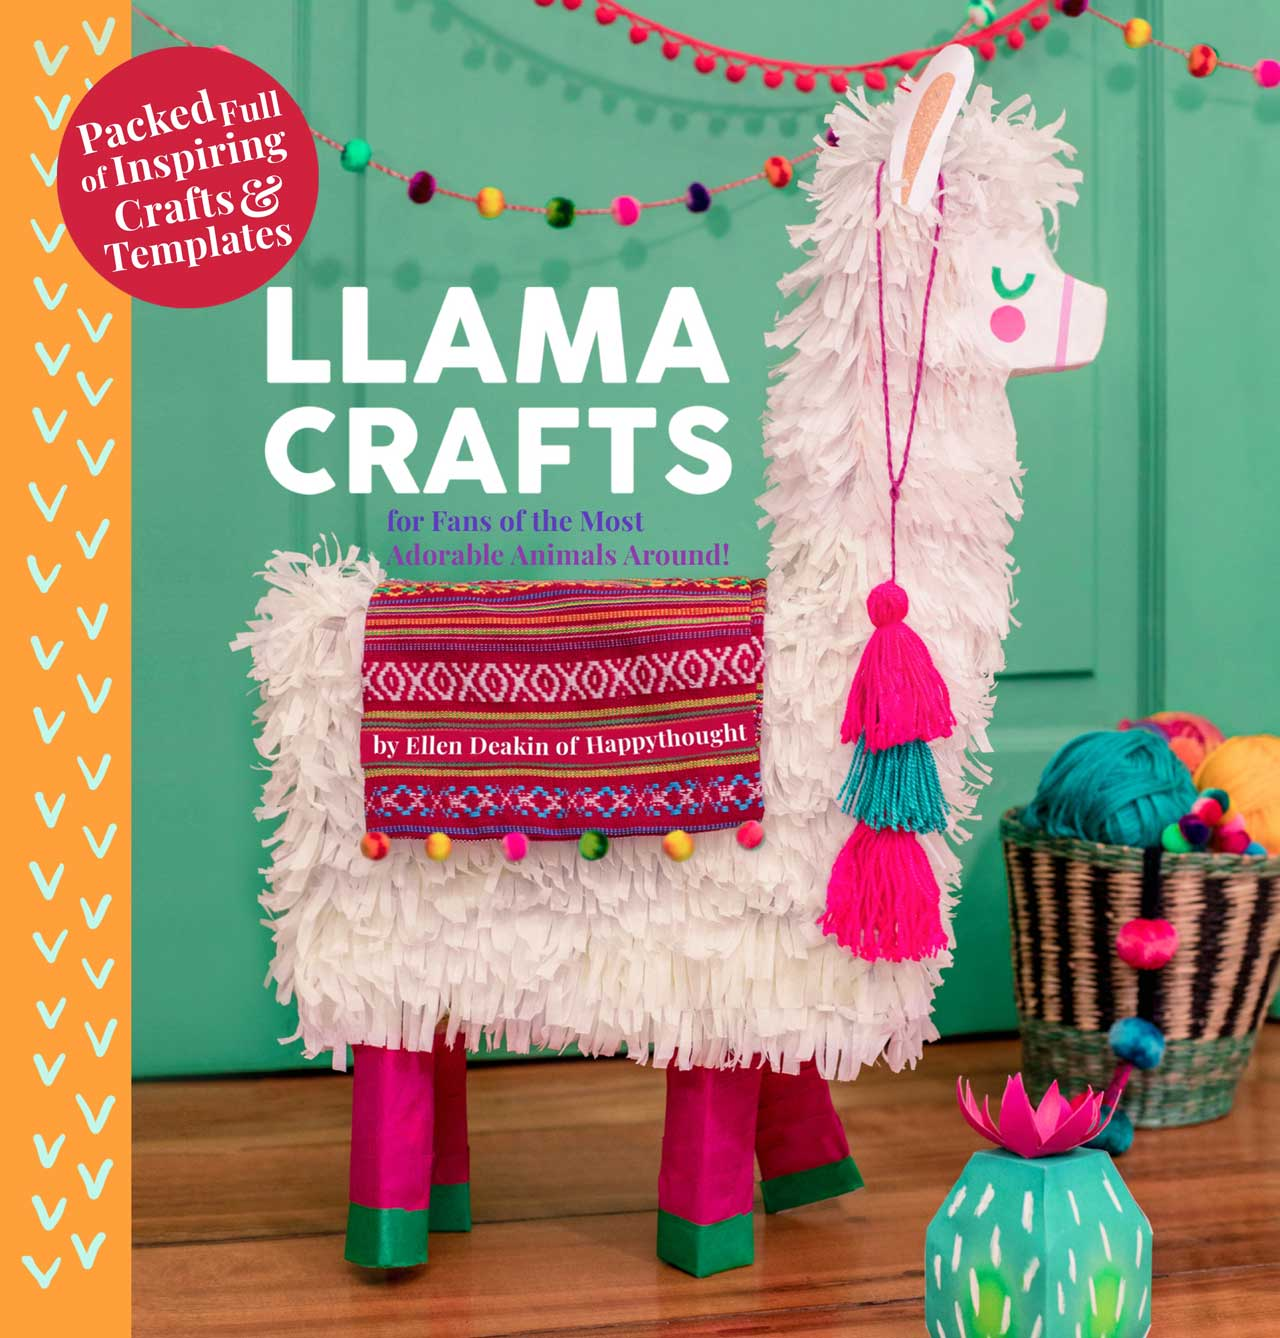 Llama crafts by Ellen Deakin from Happythought featuring 18 classic llama projects!